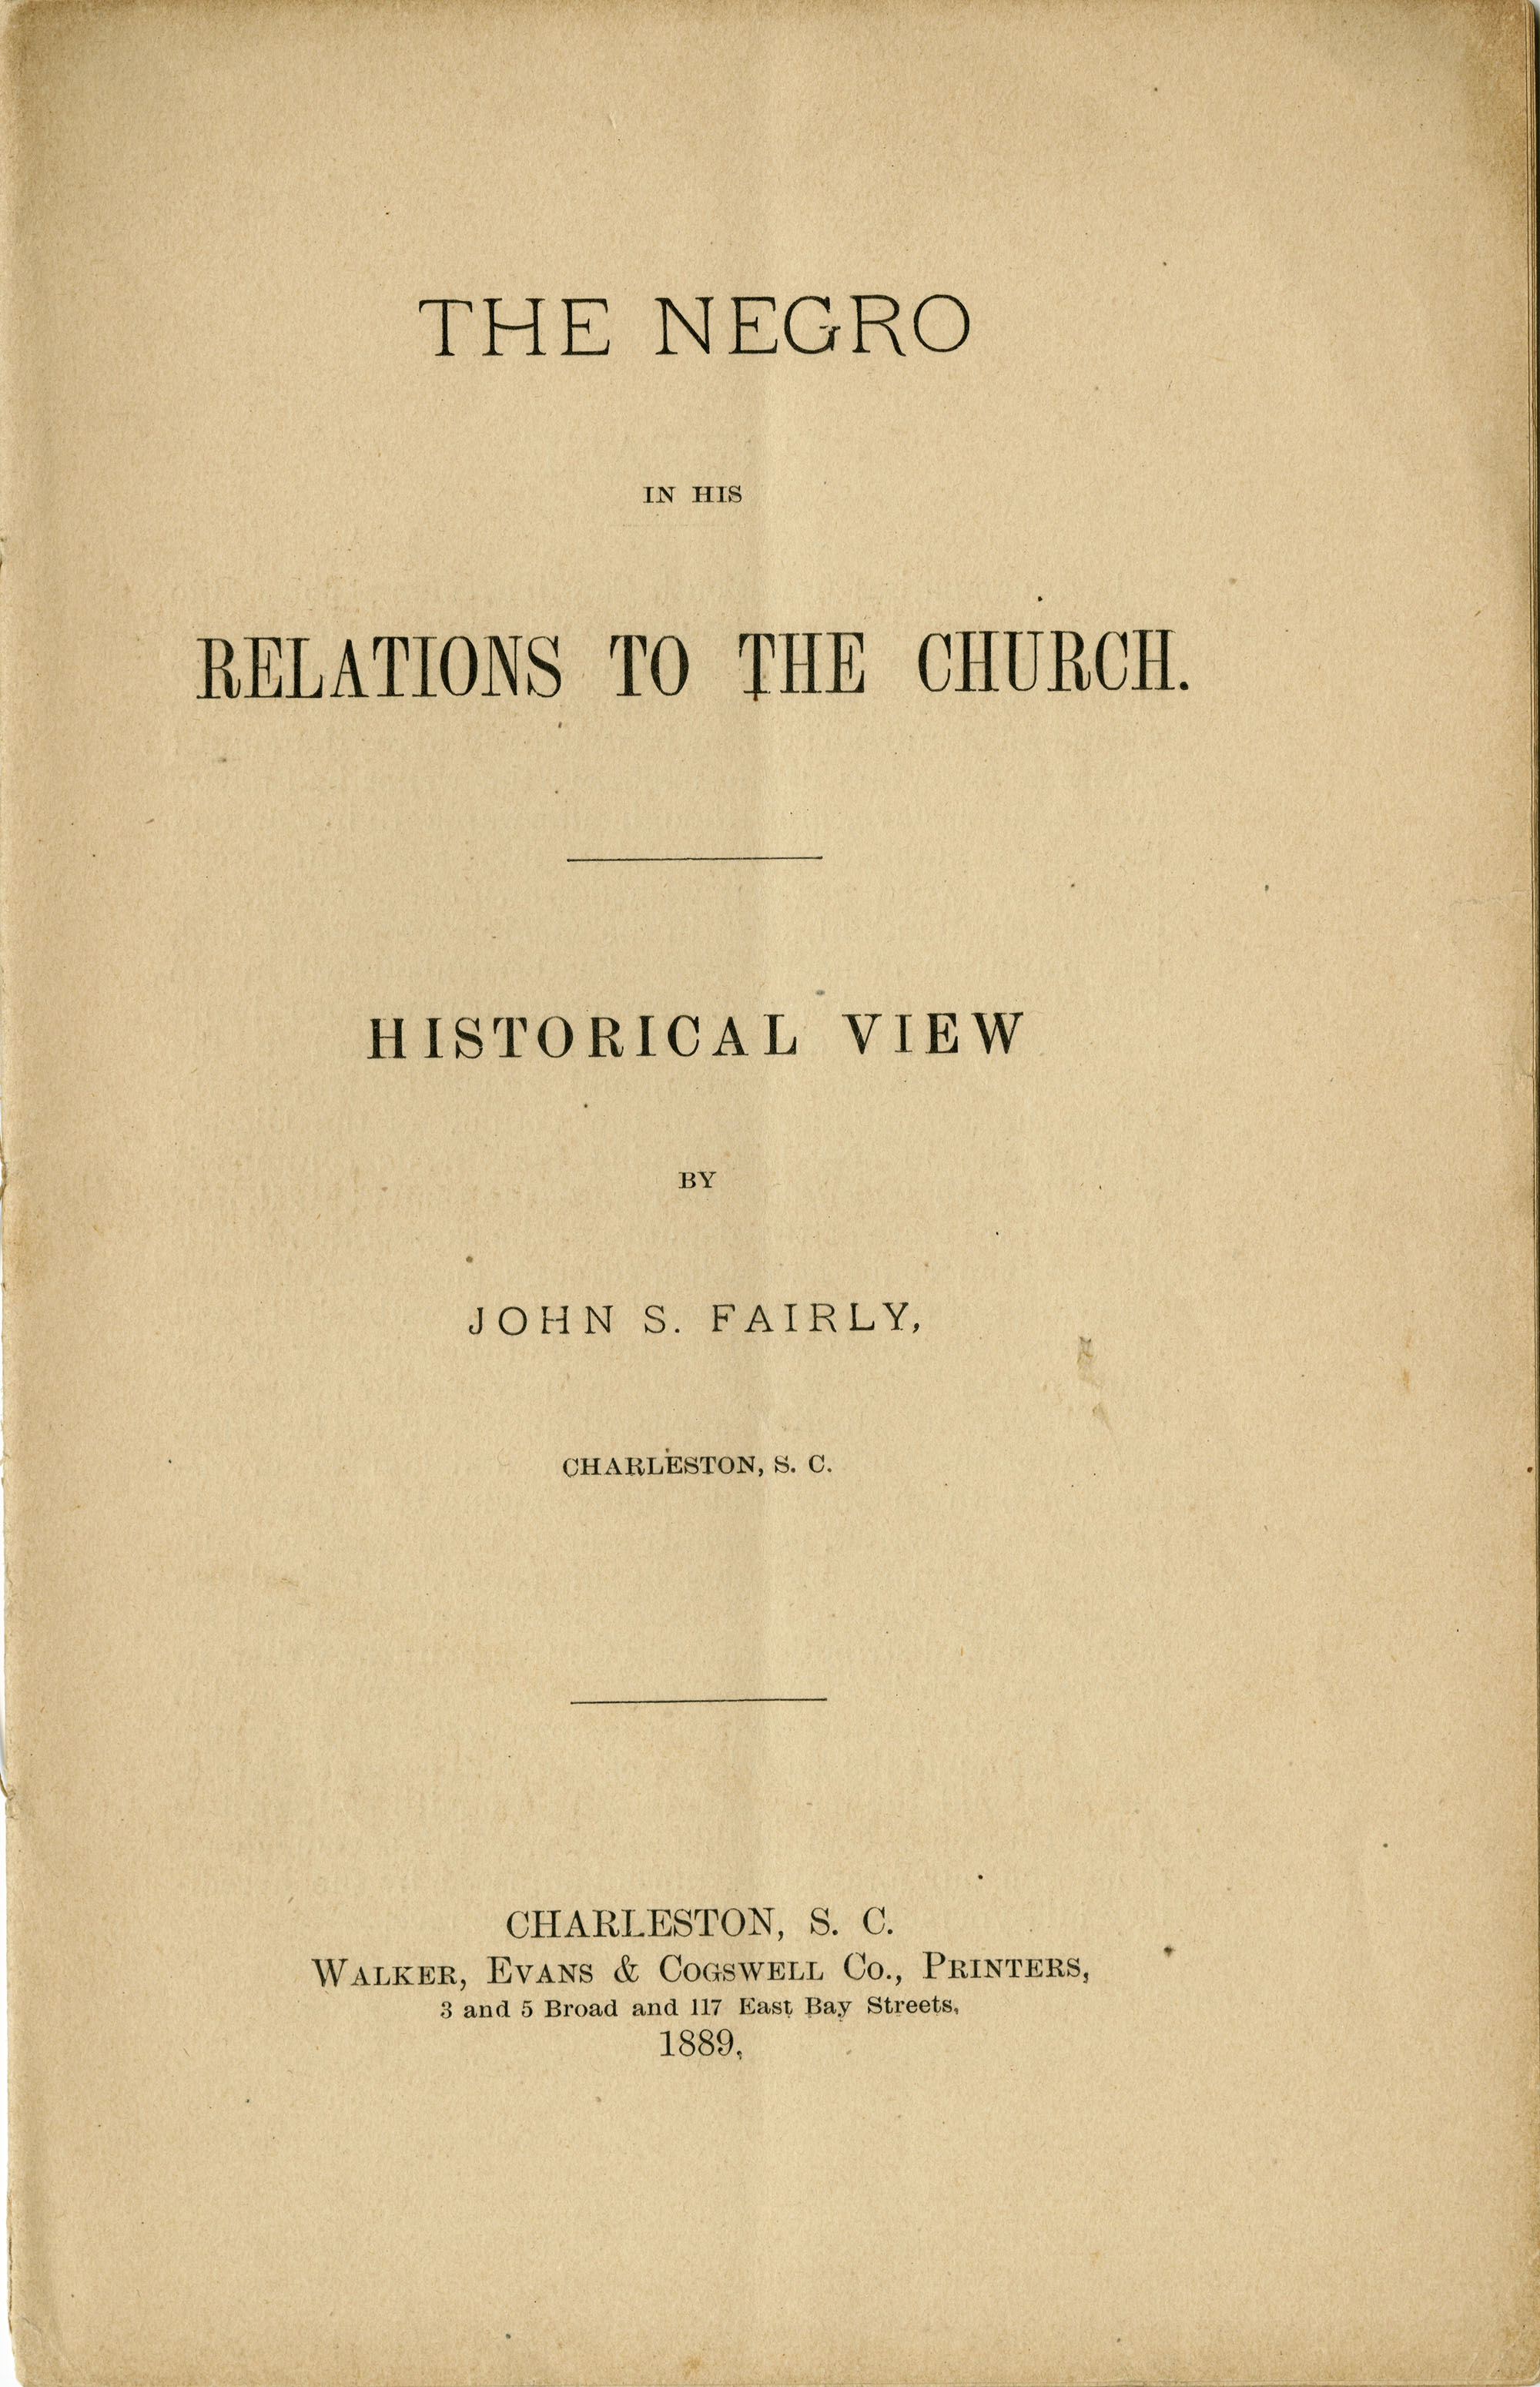 The Negro in his Relations to the Church : historical view / by John S. Fairly. Page 1